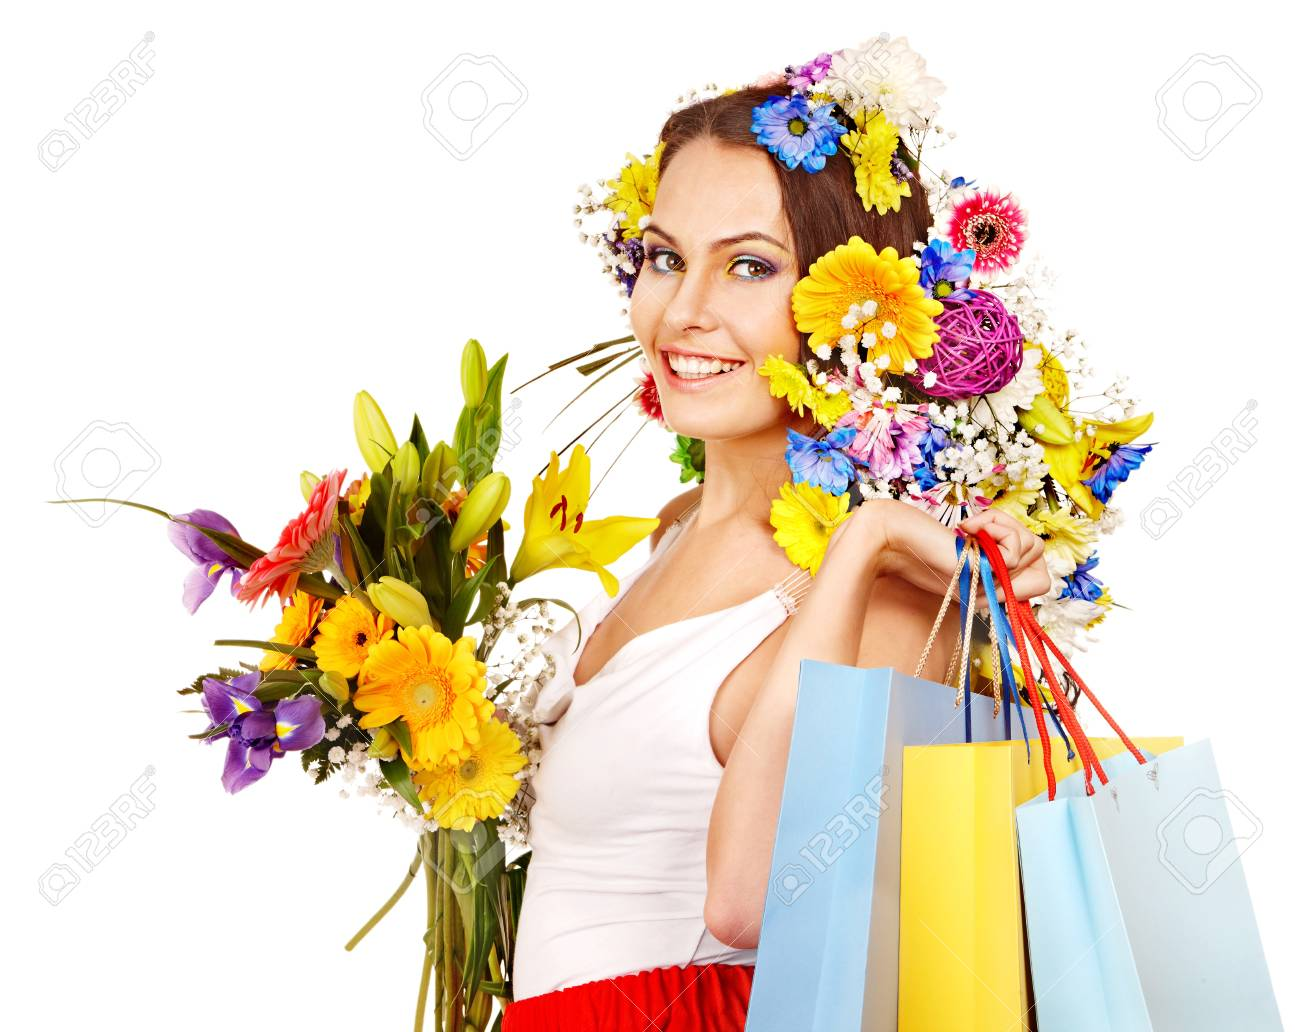 Woman with shopping bag holding flower. Isolated. Stock Photo - 17753815